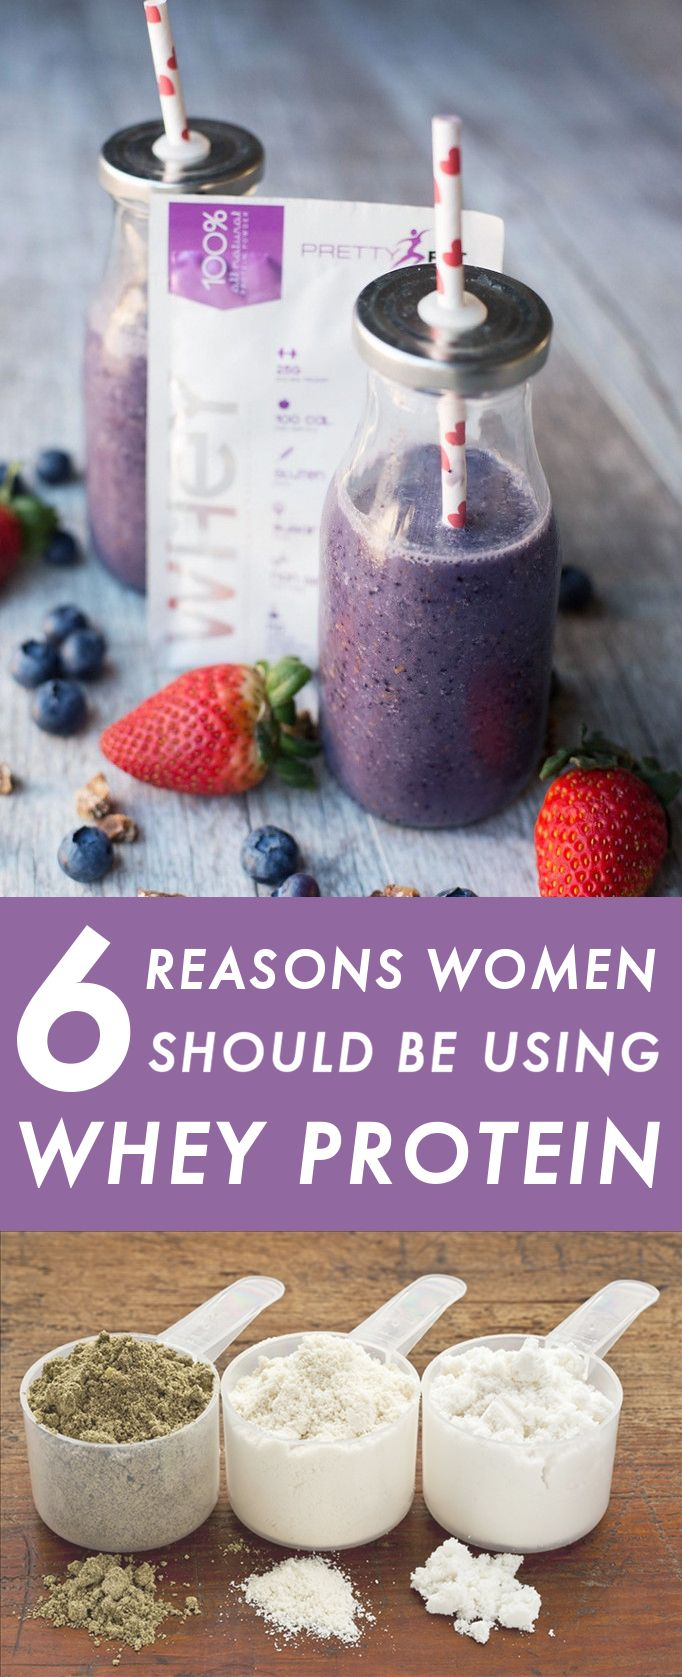 Besides being affordable and delicious, whey offers benefits to women other proteins can't: http://blog.imprettyfit.com/uncategorized/6-reasons-women-should-use-whey-protein/